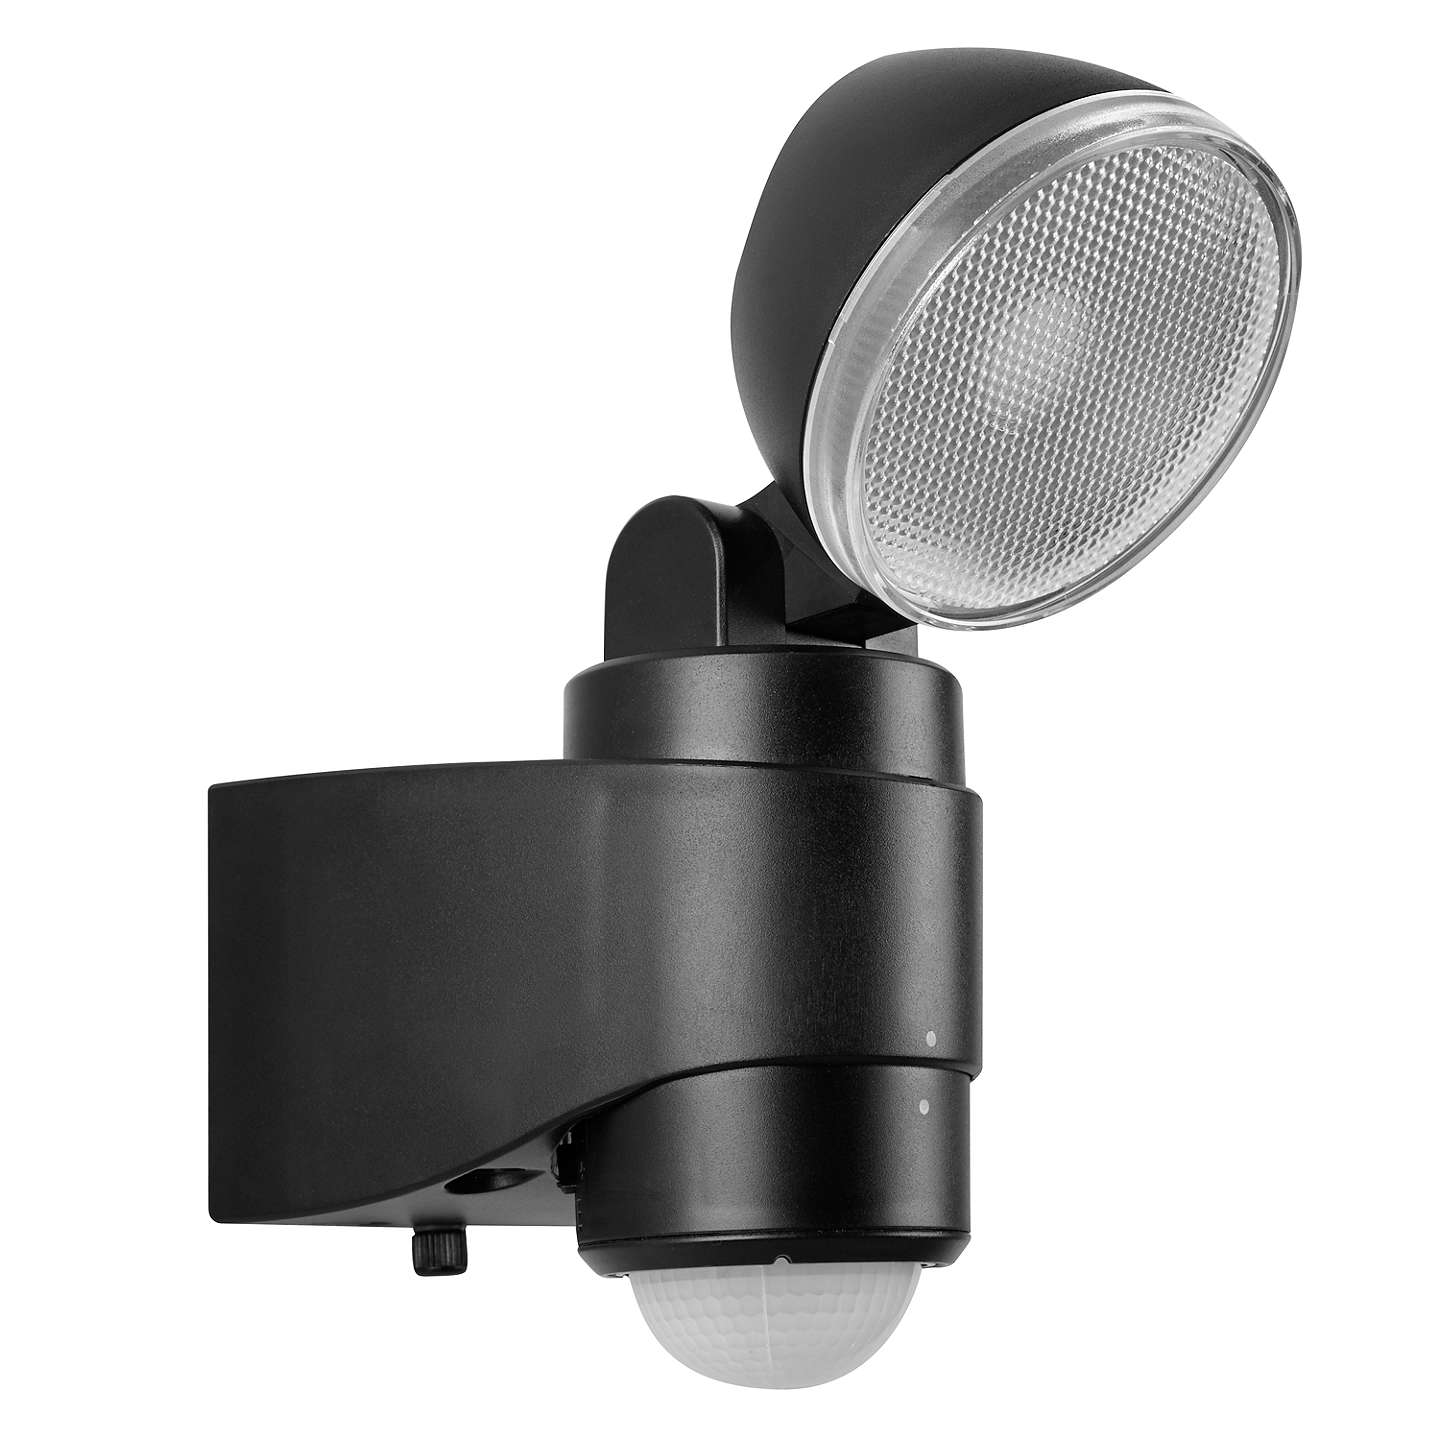 Saxby laryn led battery operated outdoor spotlight with pir black buysaxby laryn led battery operated outdoor spotlight with pir black online at johnlewis aloadofball Choice Image